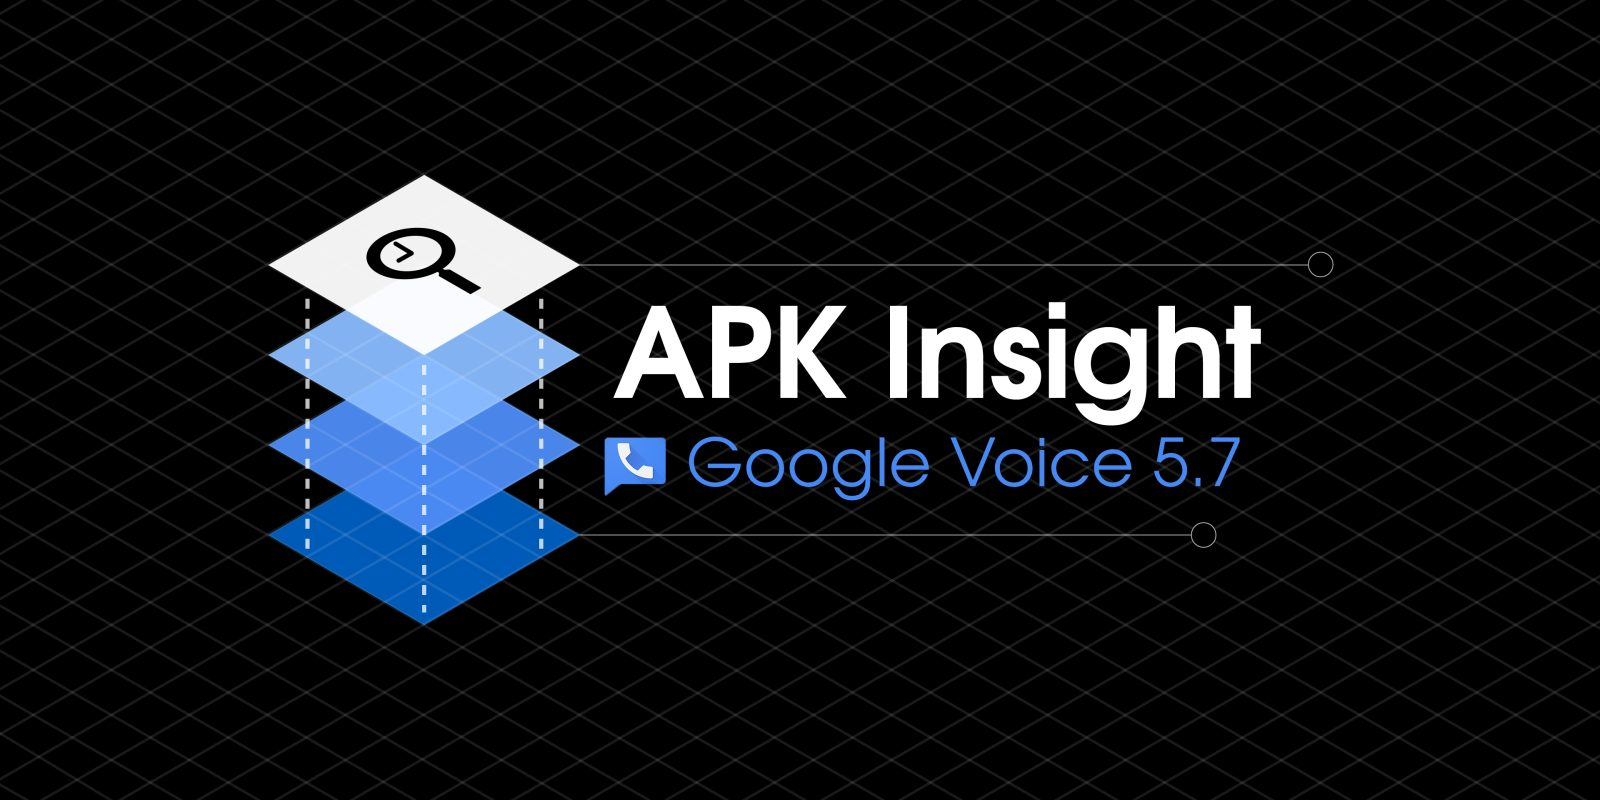 Google Voice 5 7 for Android finally preps in-app VoIP